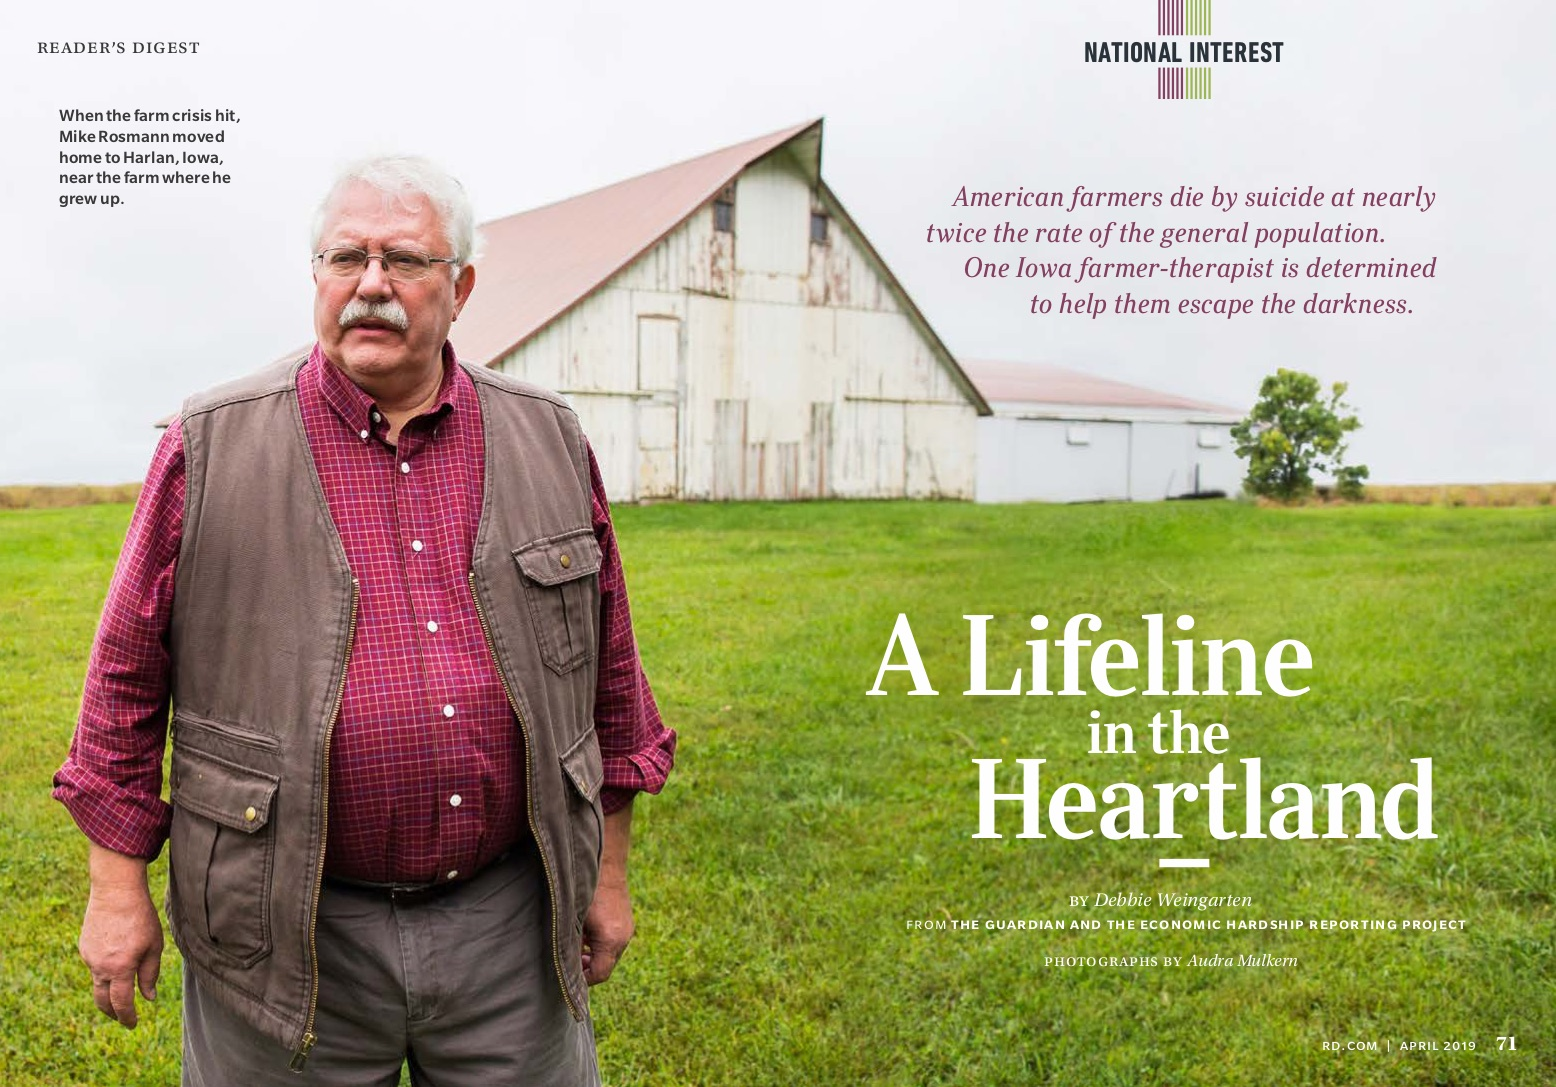 American Farmers Die by Suicide at Nearly Twice the Rate of the General Population—Here's How One Therapist Is Changing That Statistic - Readers Digest, April 2019